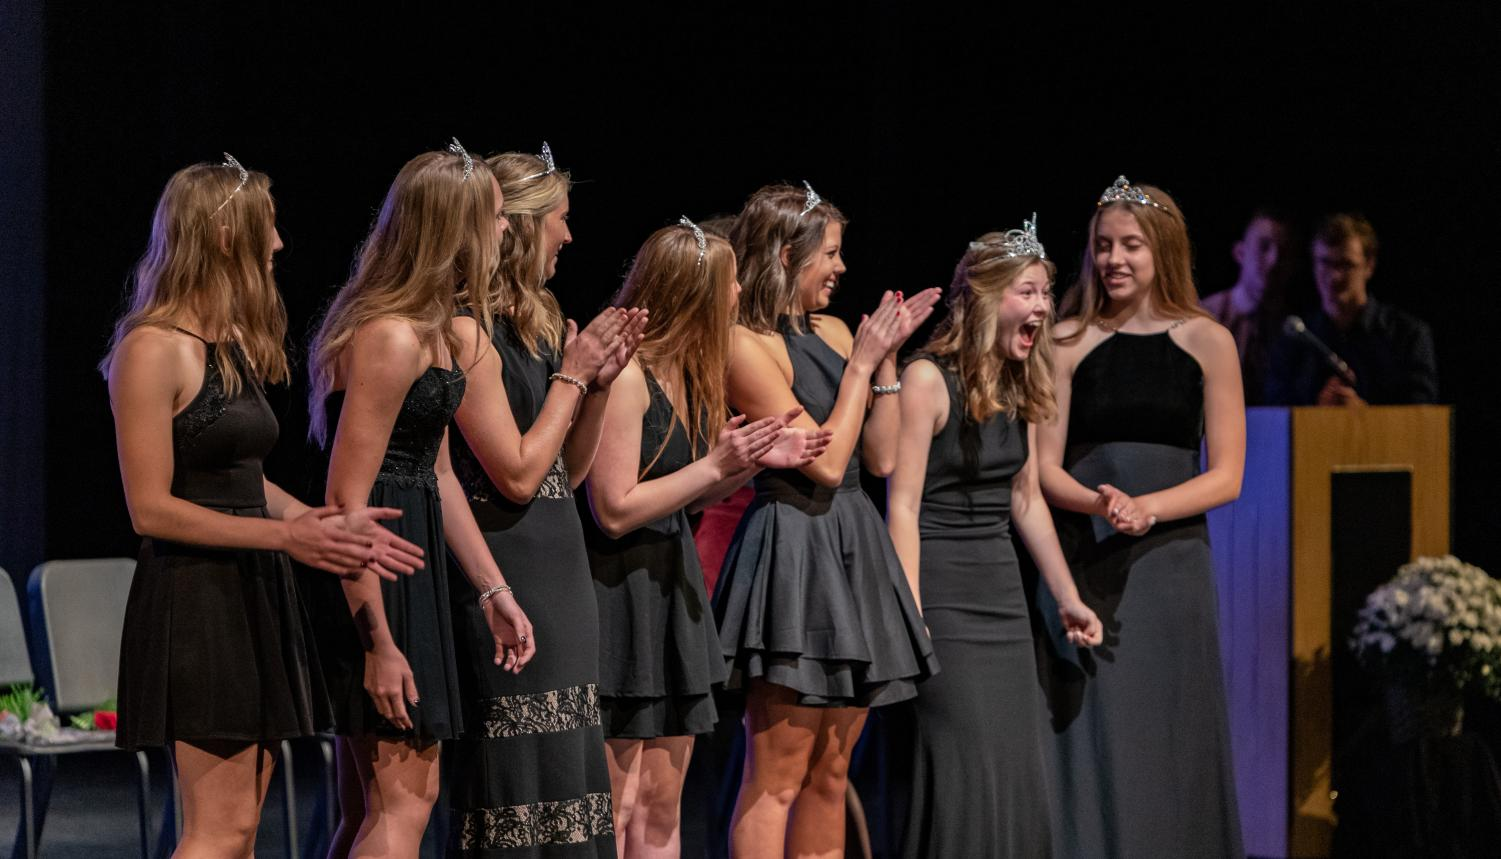 After the crown was placed on top of her head, Anna Giese had a priceless reaction.